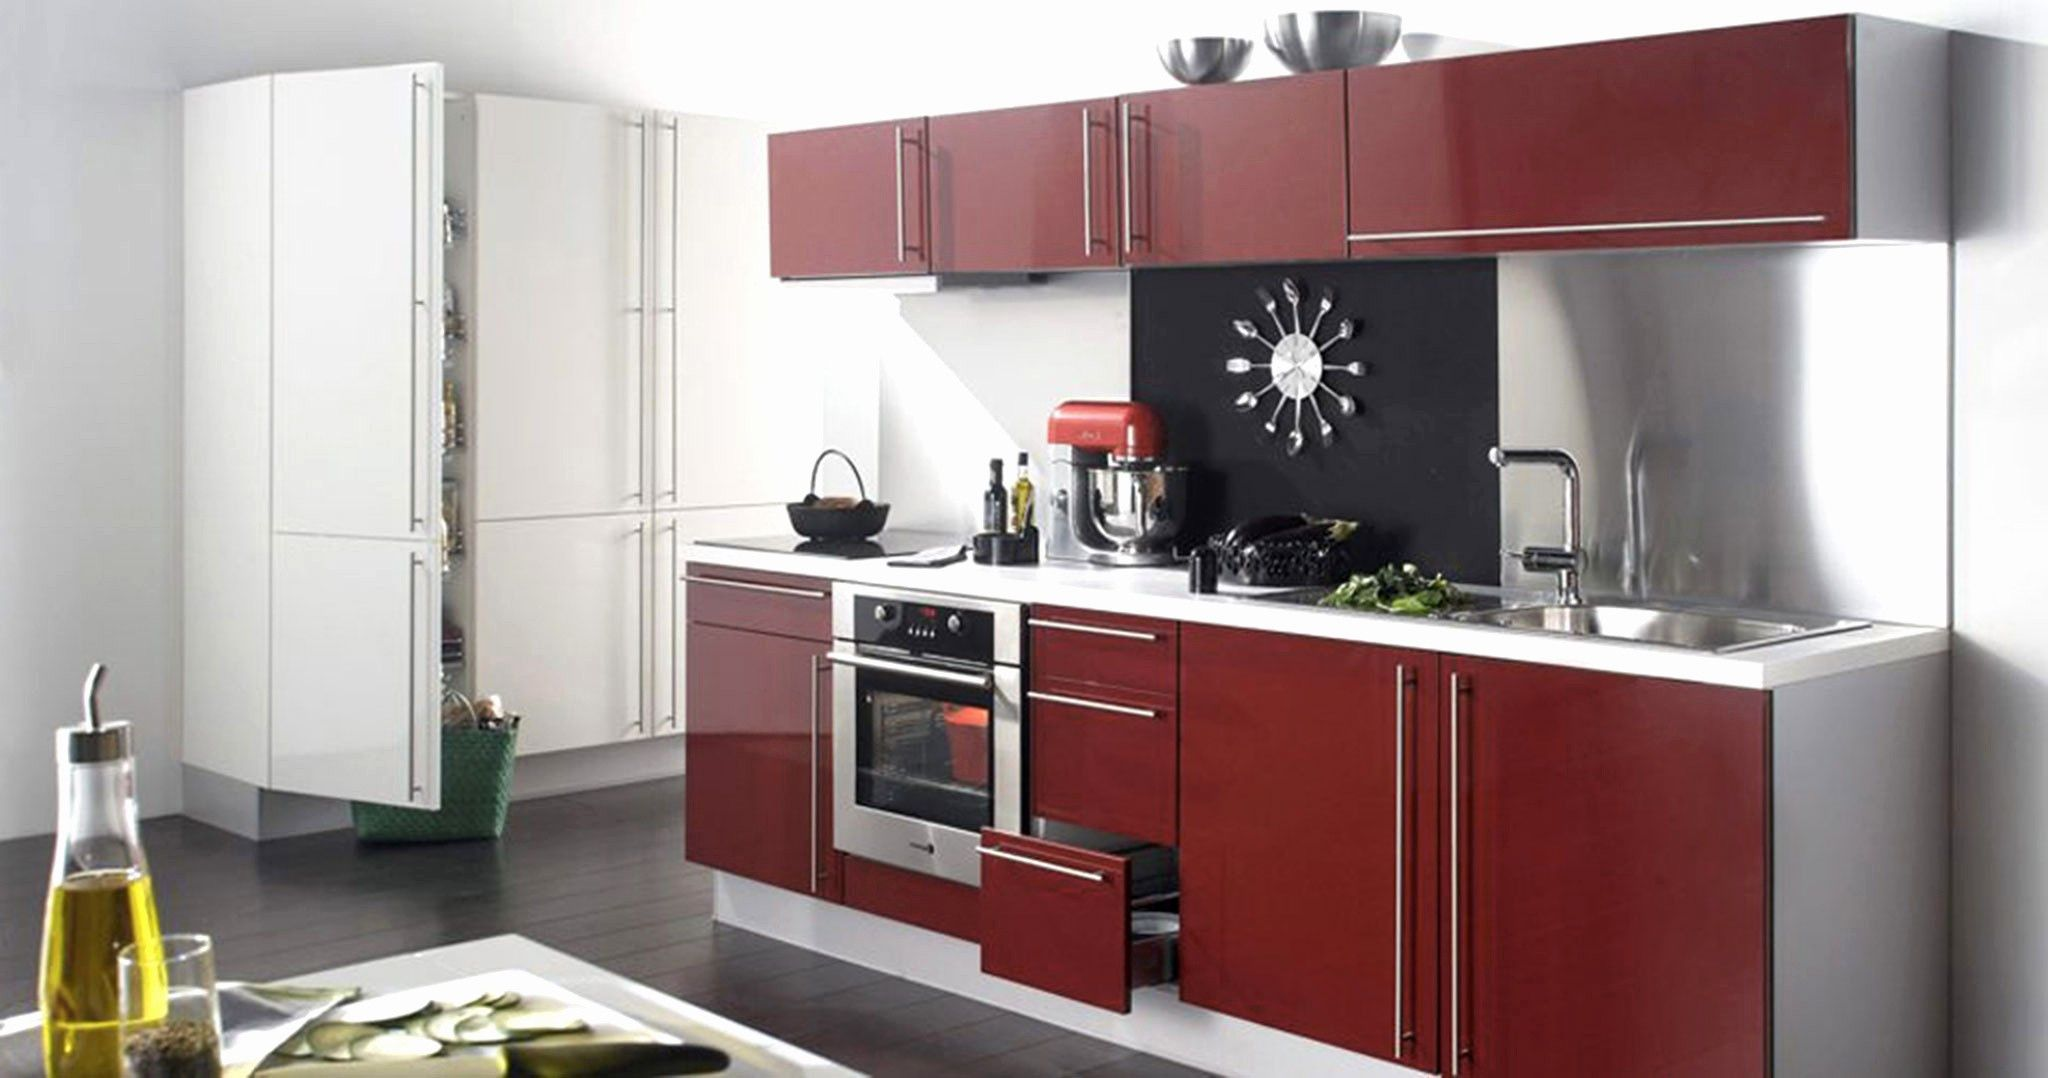 Beau Cuisine Equipee Avec Electromenager Leroy Merlin In 2020 Tiny House Kitchen Home Kitchens Kitchen